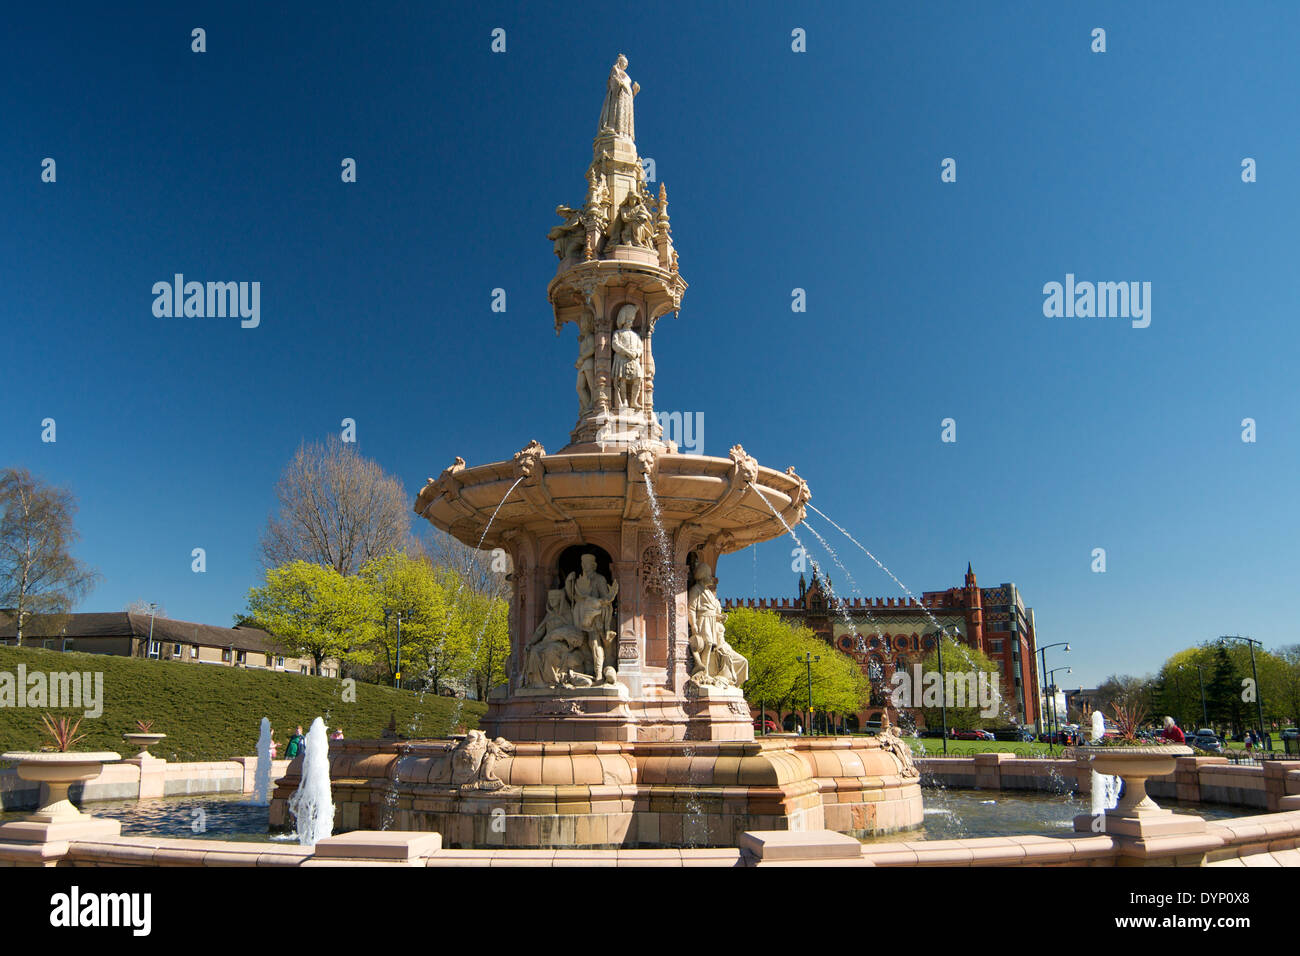 The Doulton Fountain on Glasgow Green, Glasgow. - Stock Image